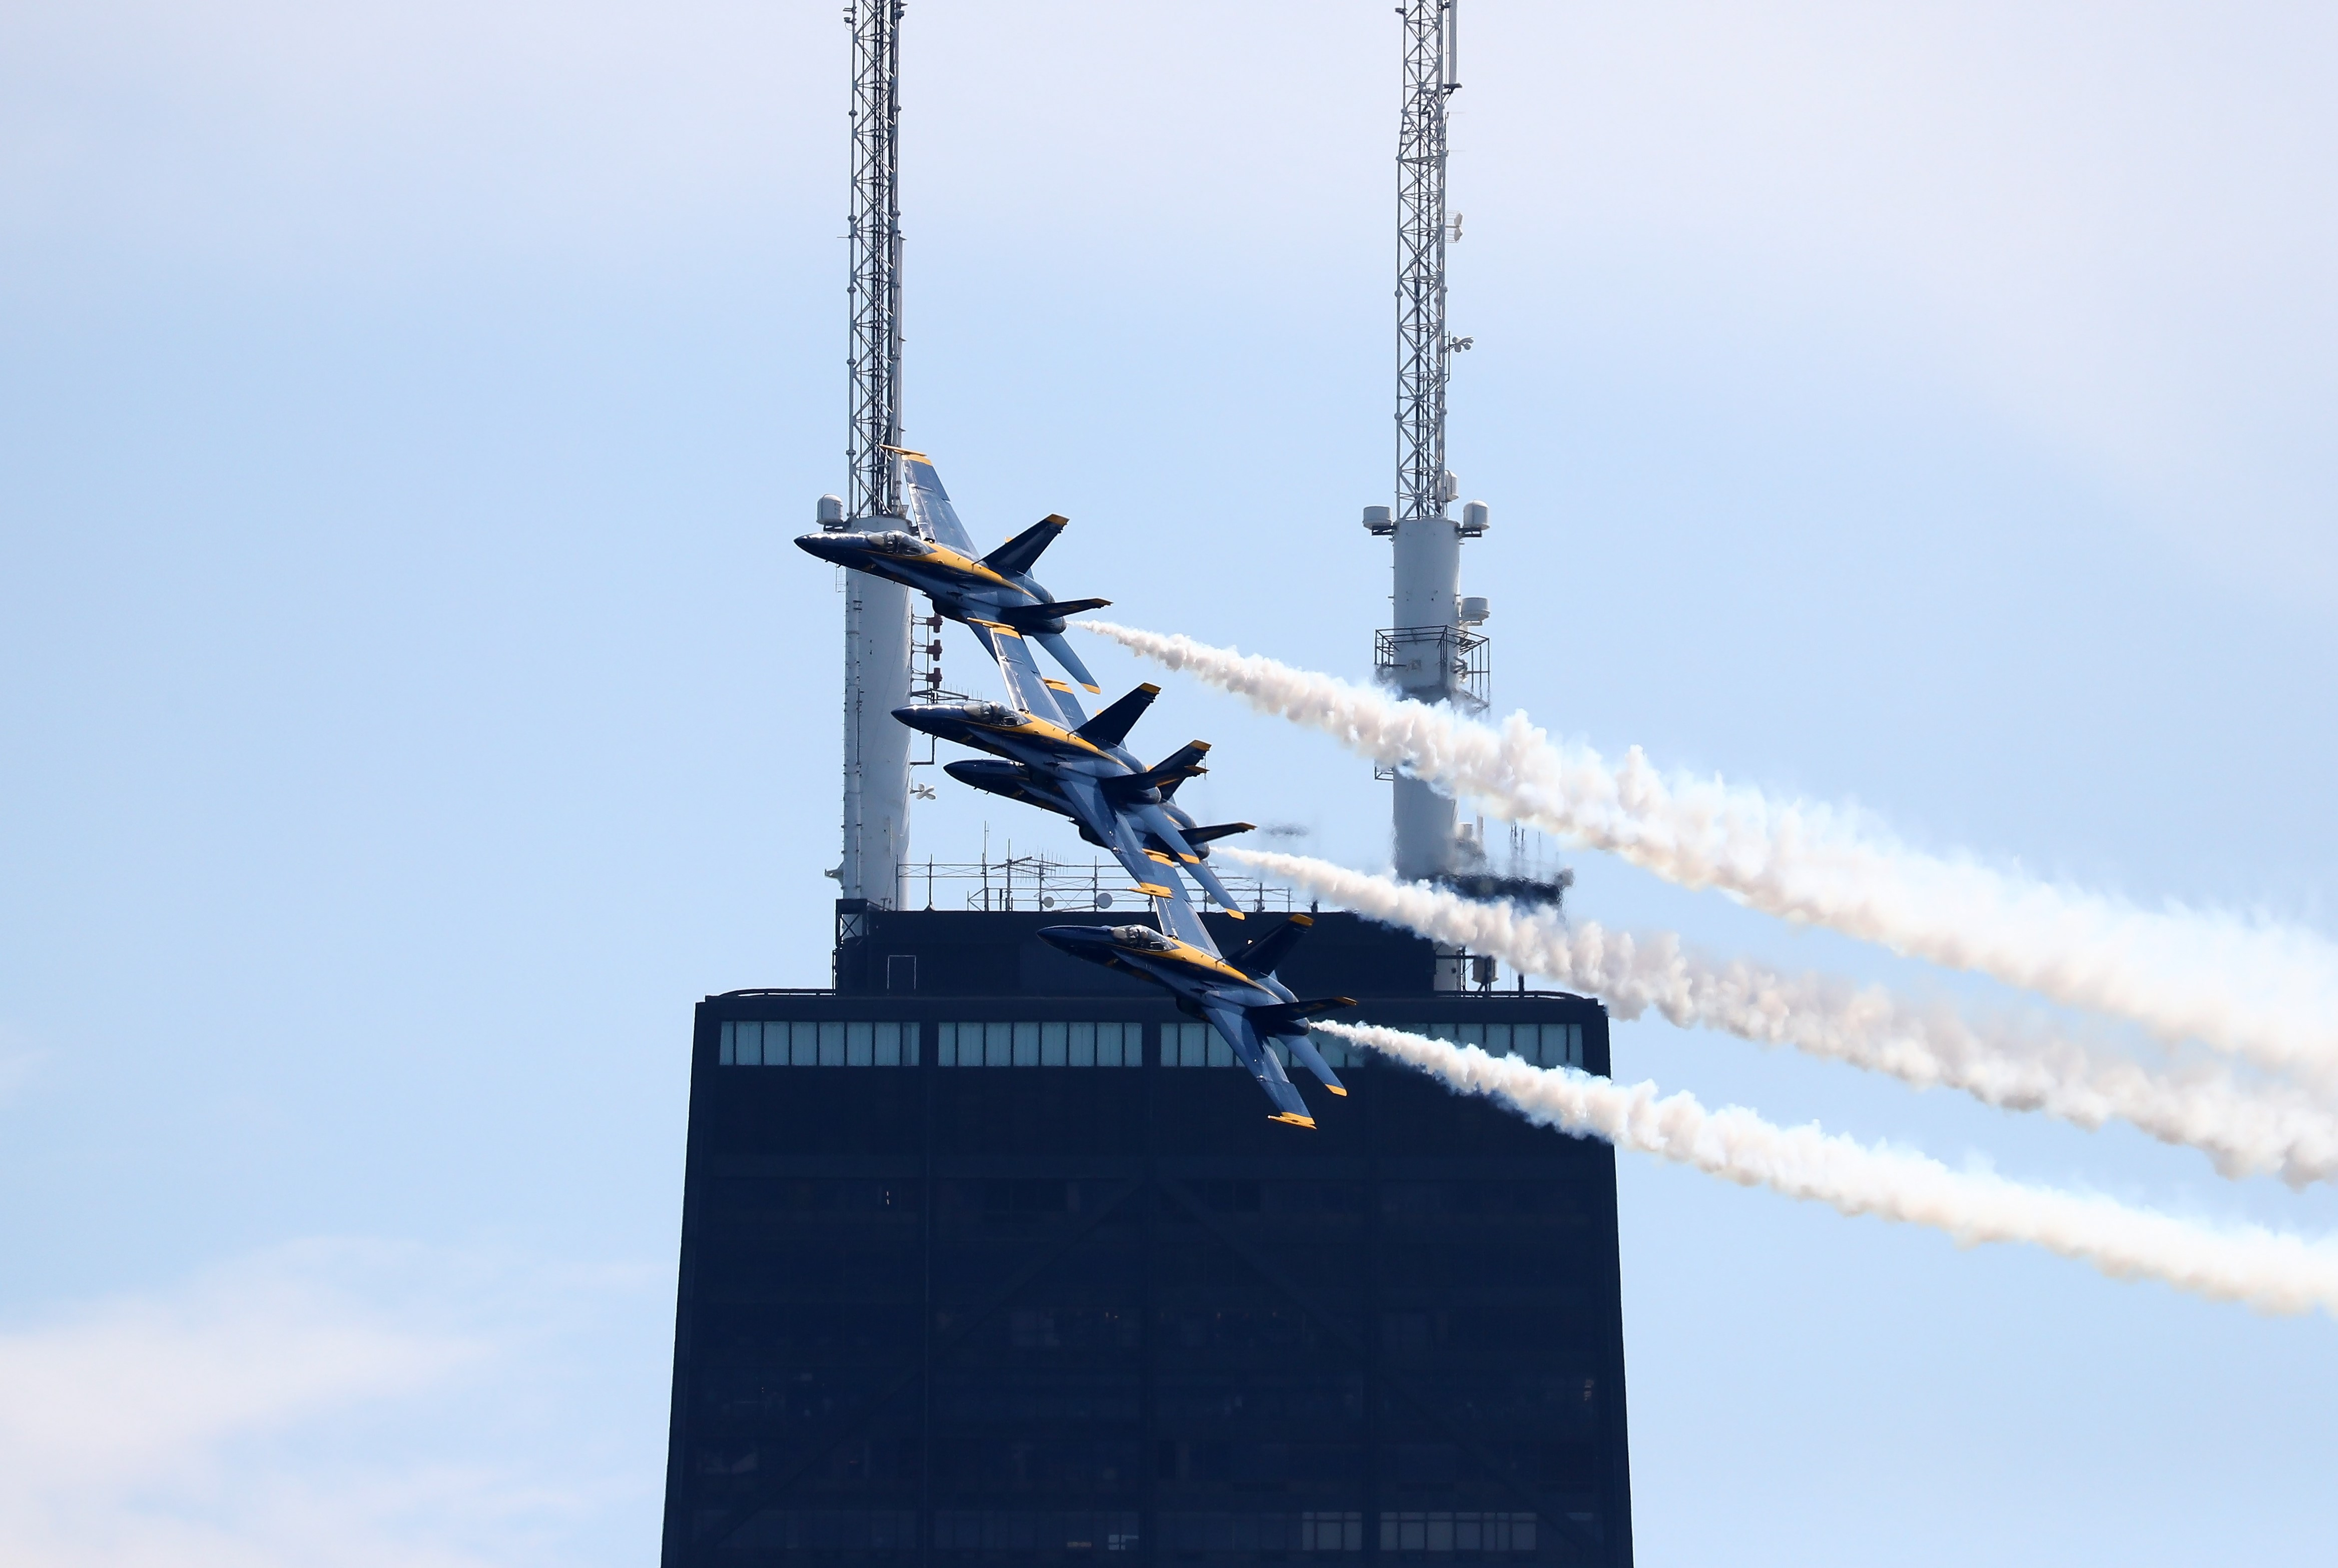 Four Blue Angel F-18 jets fly in a diamond formation front of the twin antennas of John Hancock Center.